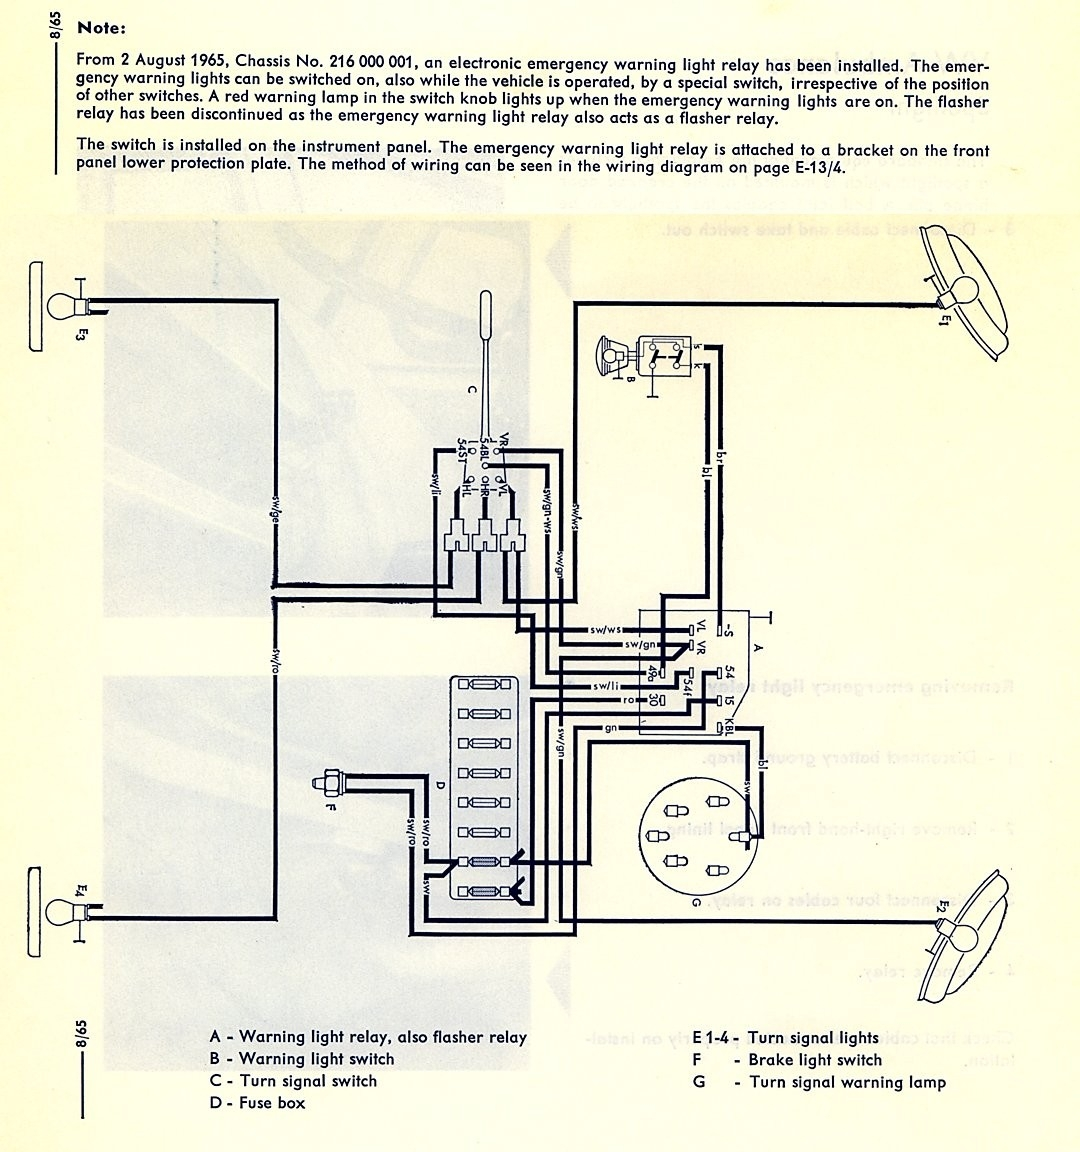 hight resolution of emergency push button wiring diagram emergency push button wiring diagram download wiring diagram detail name